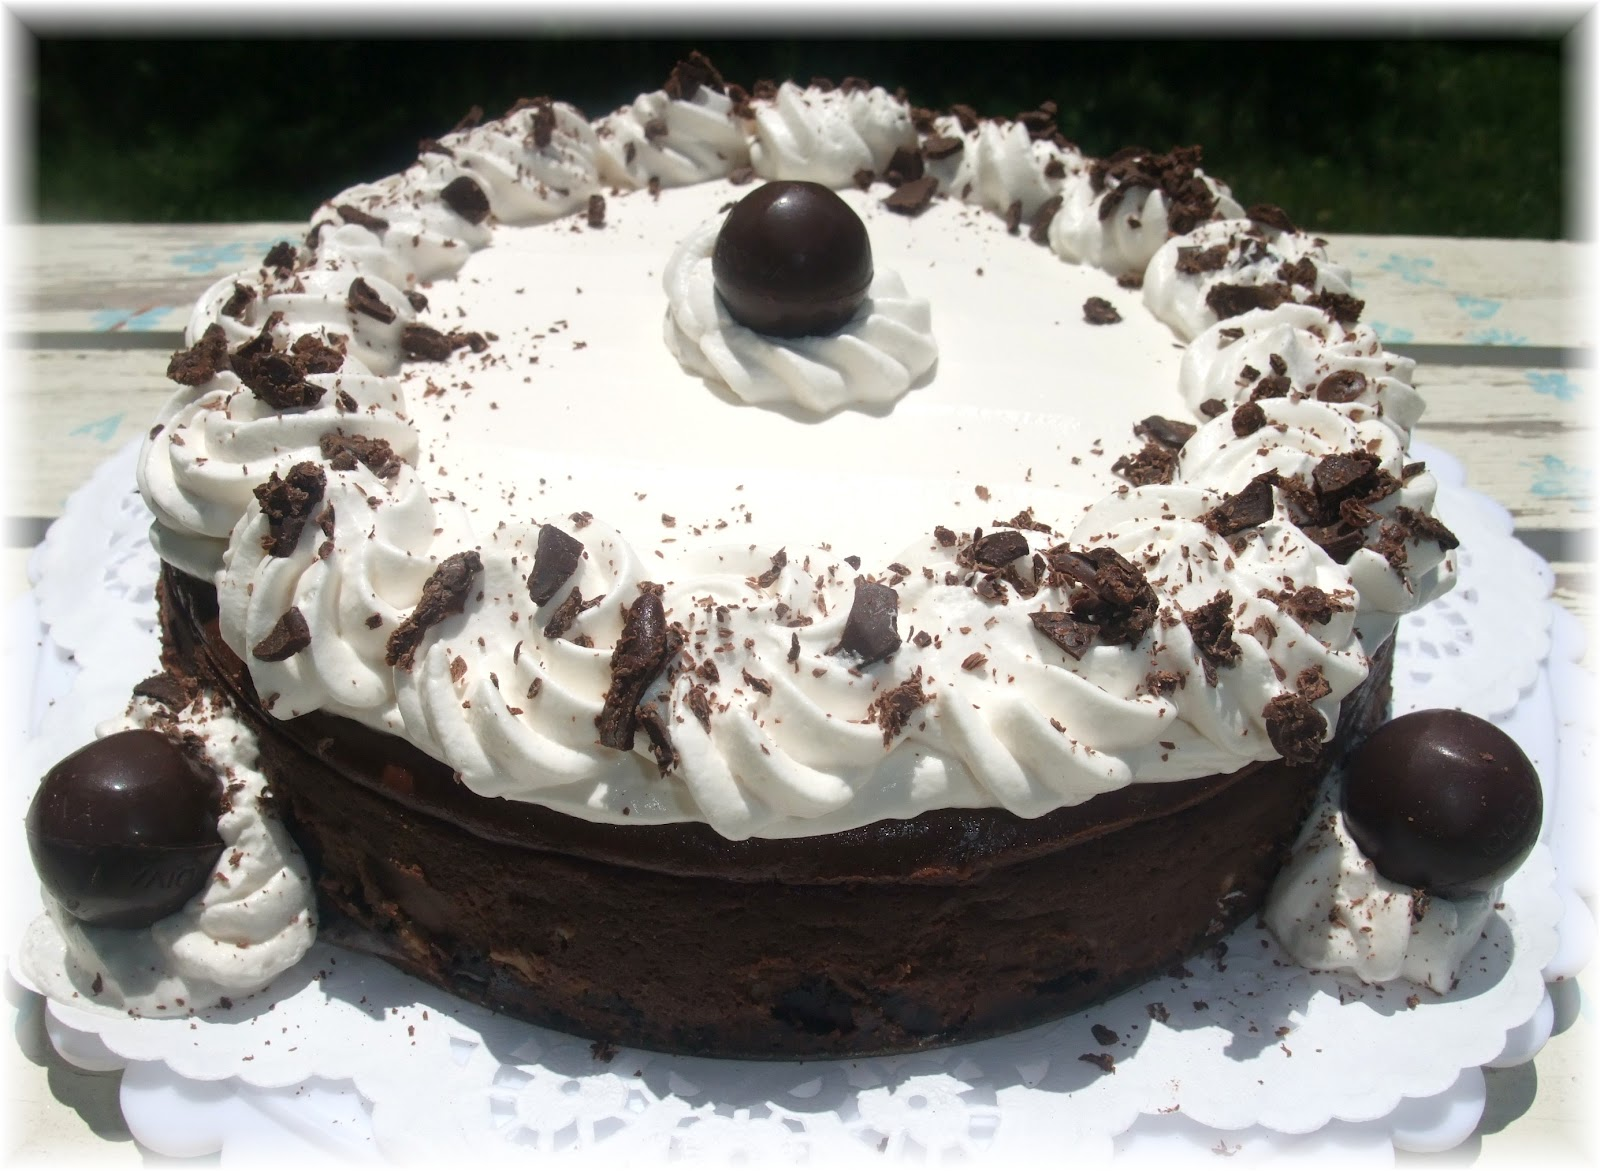 Chocolate Cheese Cake For Birthday Image Inspiration of Cake and